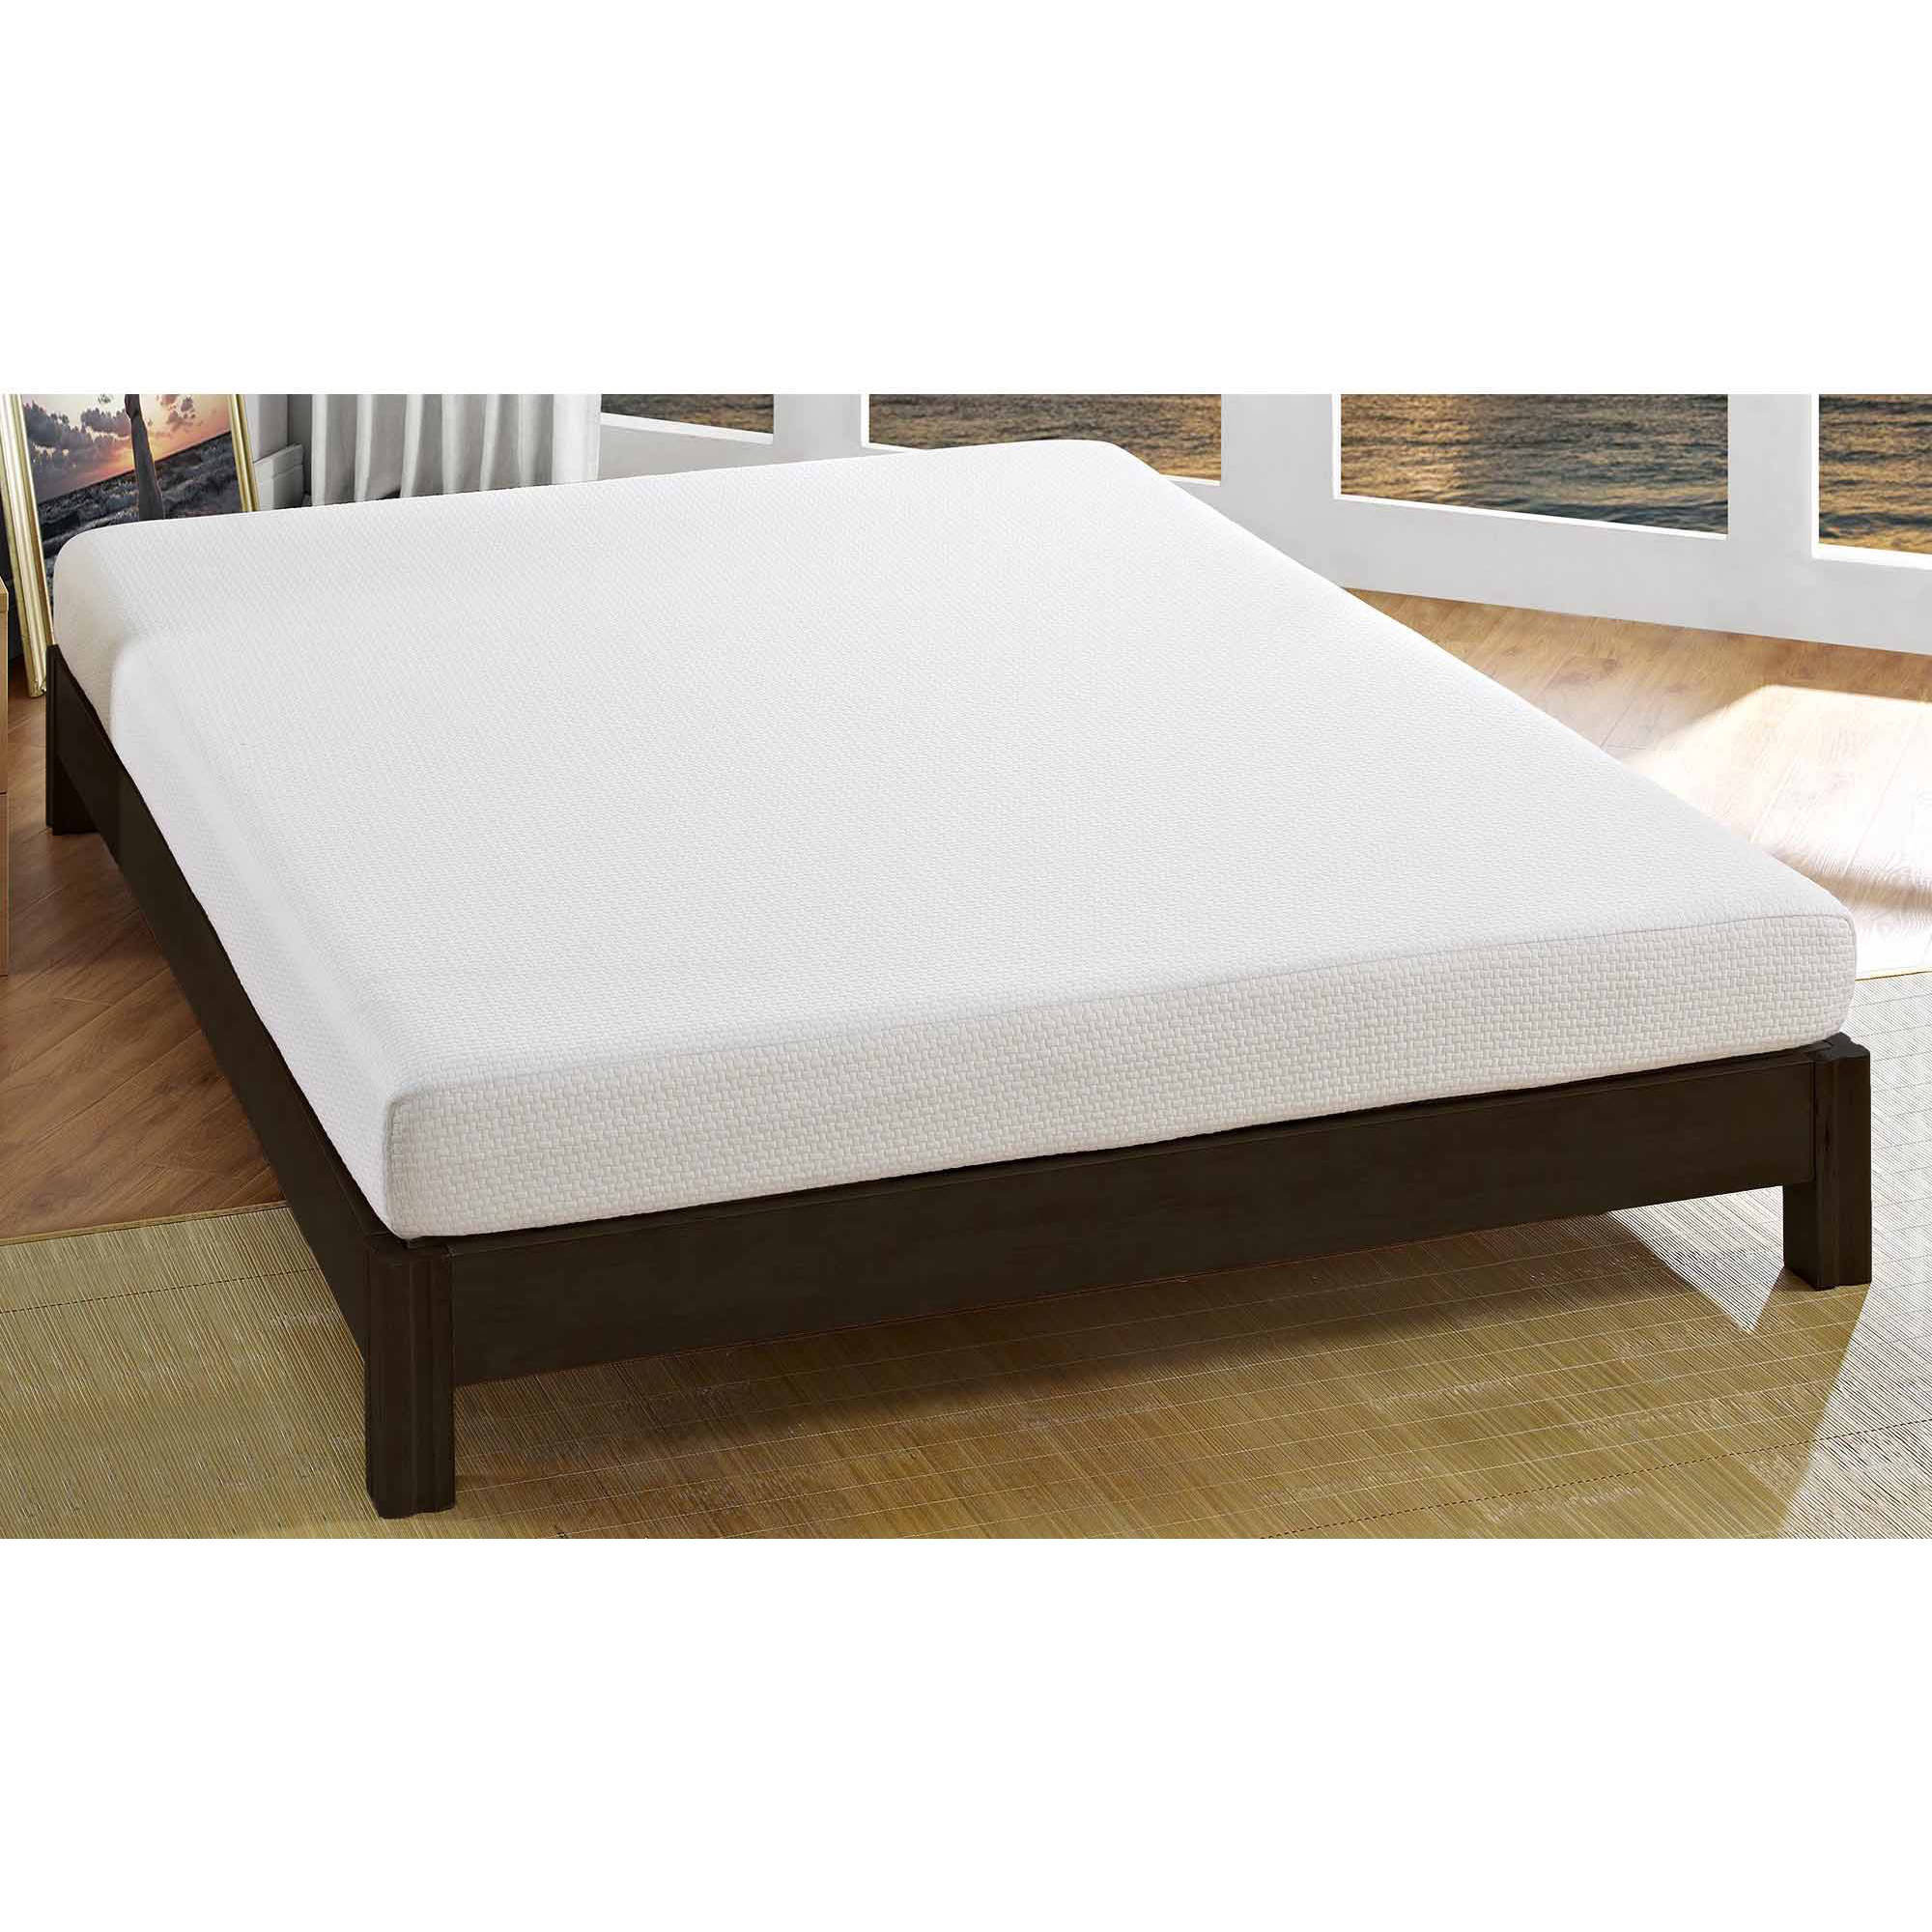 Signature Sleep Gold Series CertiPUR-US 6 Inch Memory Foam Mattress, Multiple sizes by Dorel Home Products